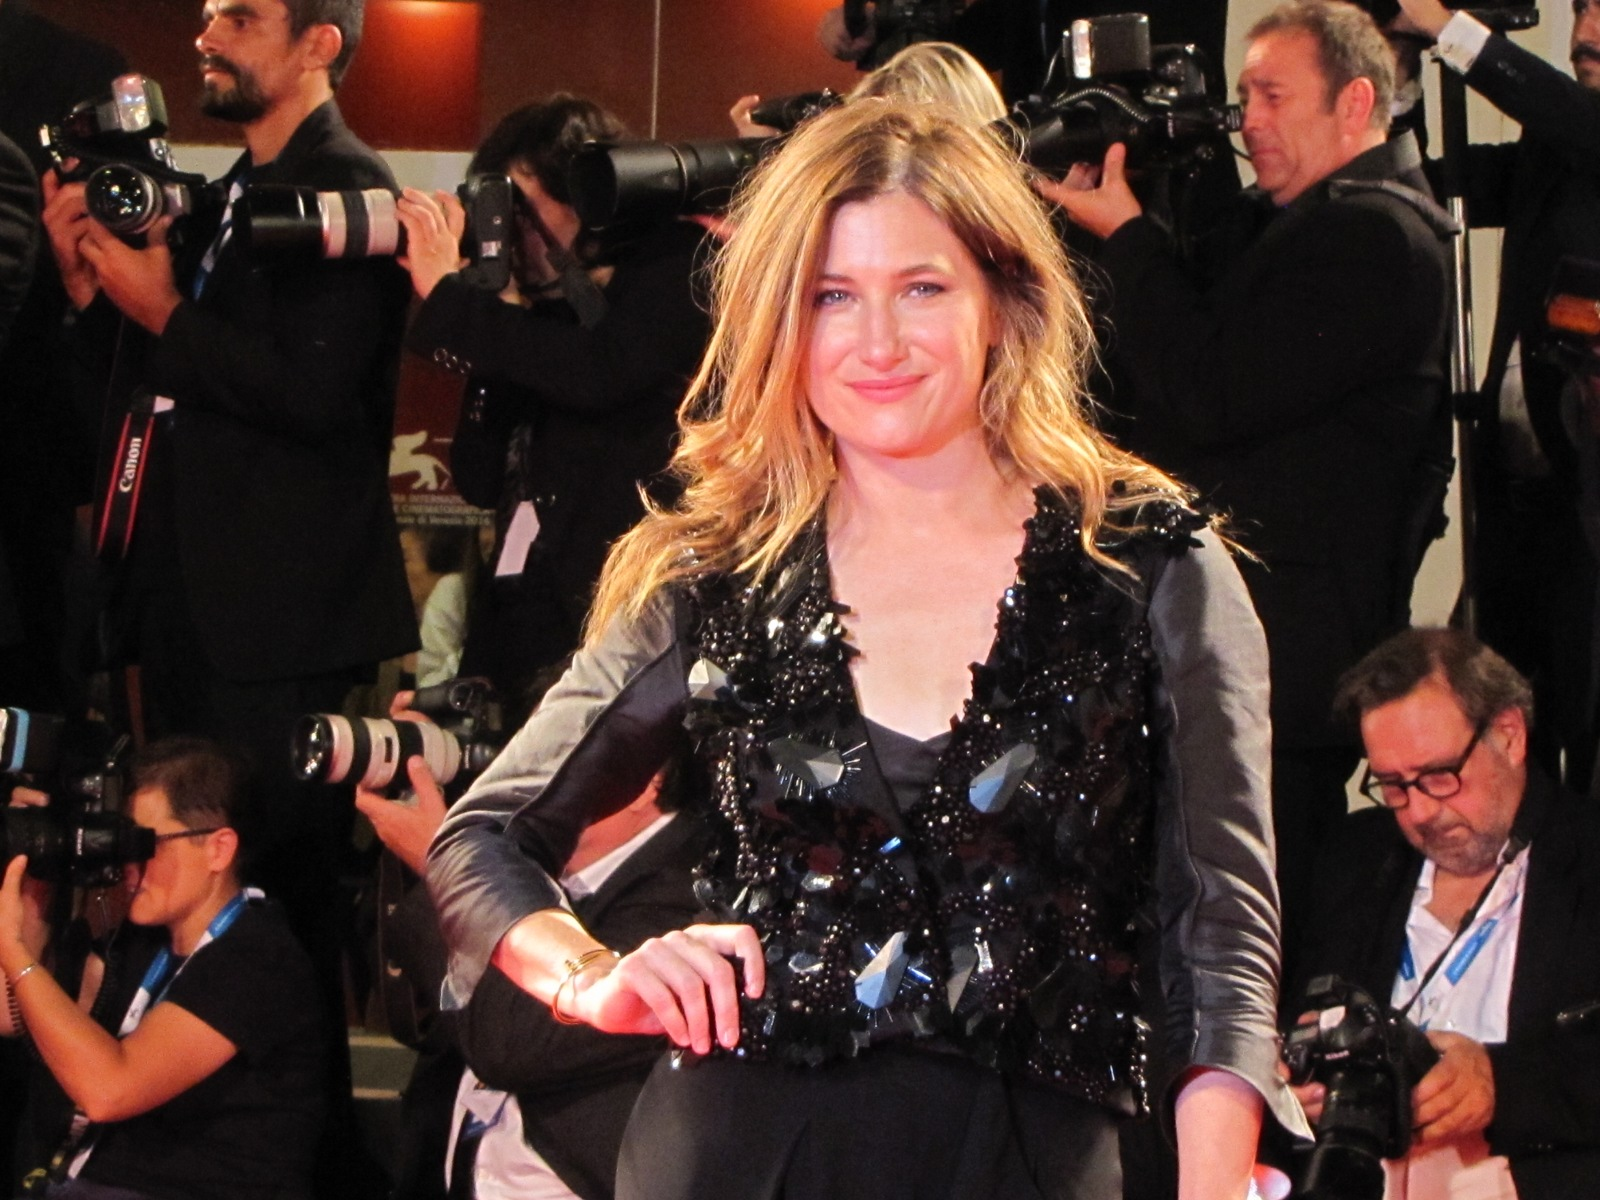 She's Funny That Way  - Louise Stratten sul red carpet a Venezia 2014